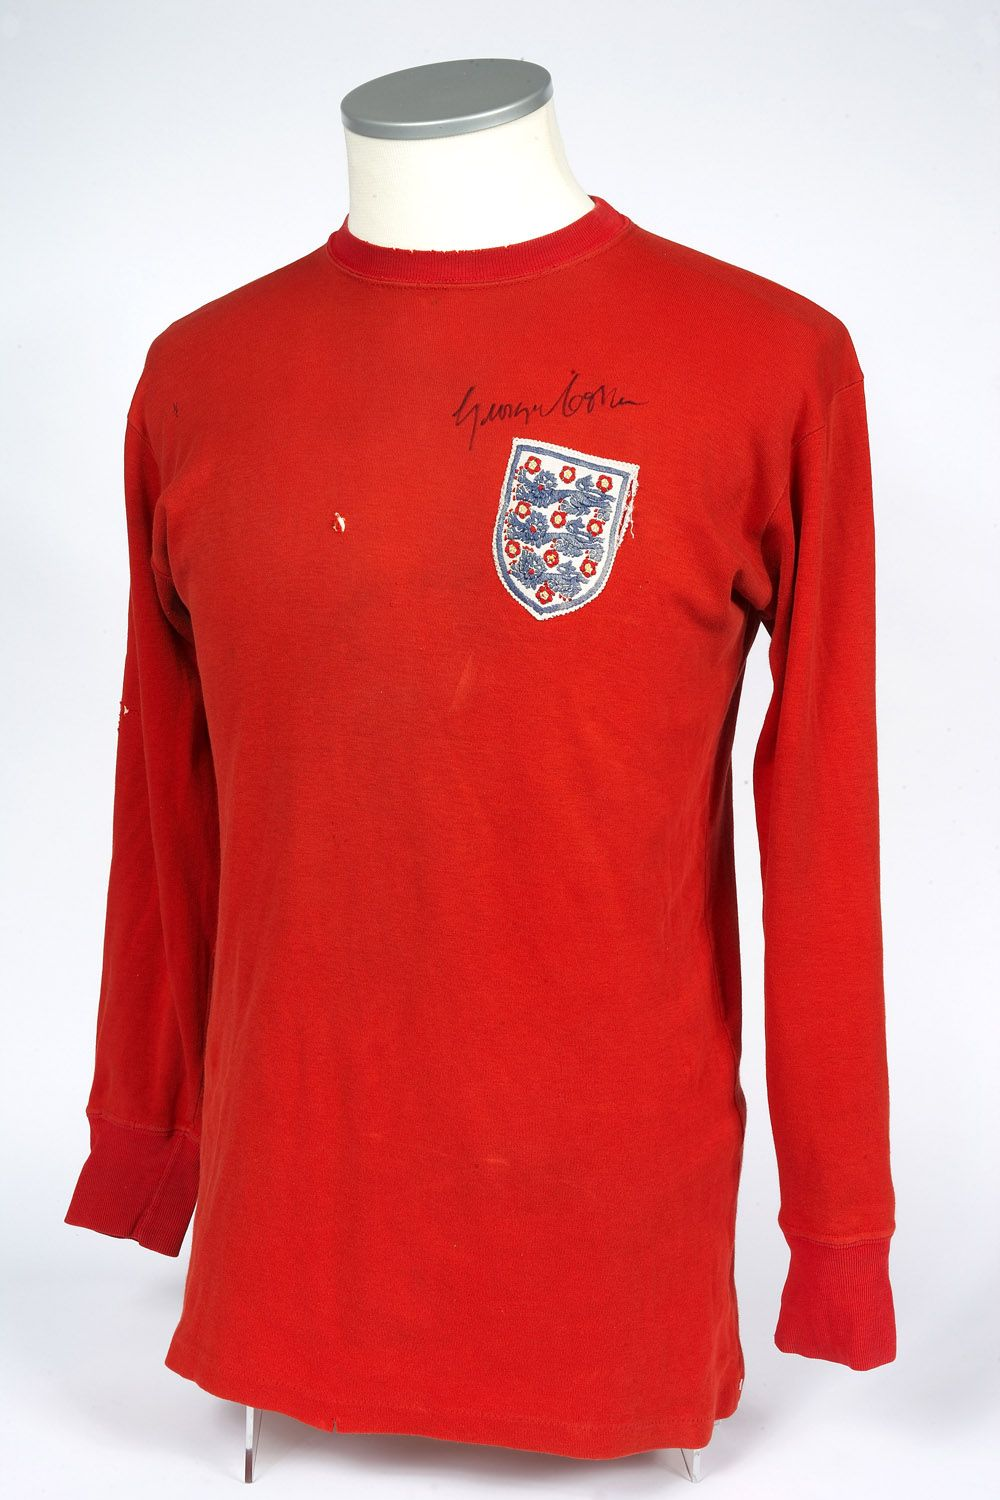 George Cohen England Shirt 1966 World Cup Final Previously On Loan The Nfm Classic Football Shirts England Shirt Long Sleeve Tshirt Men